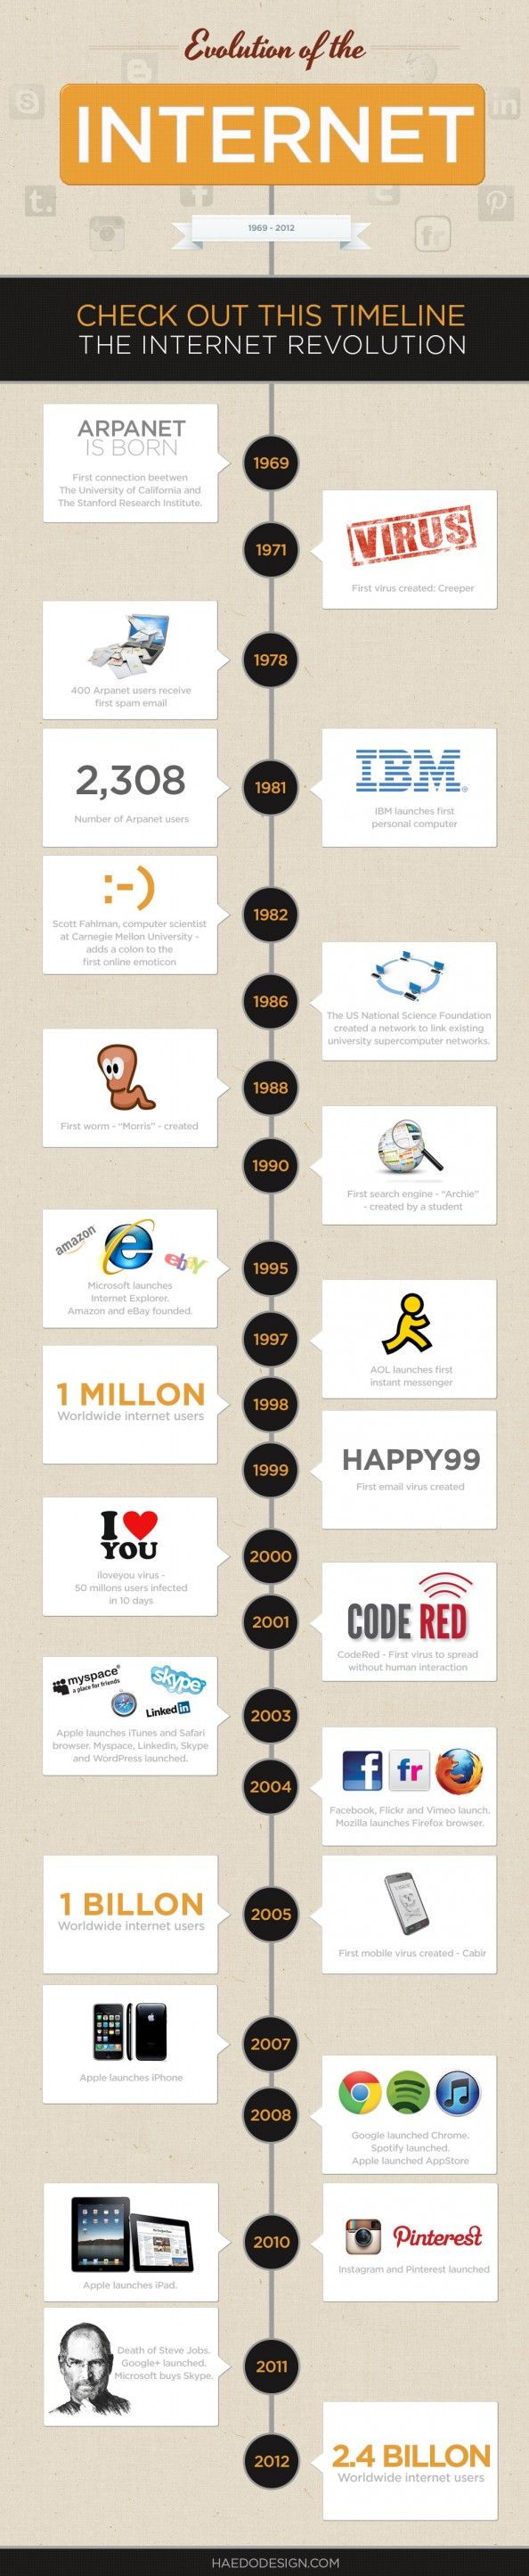 Evolution of the Internet #infographic